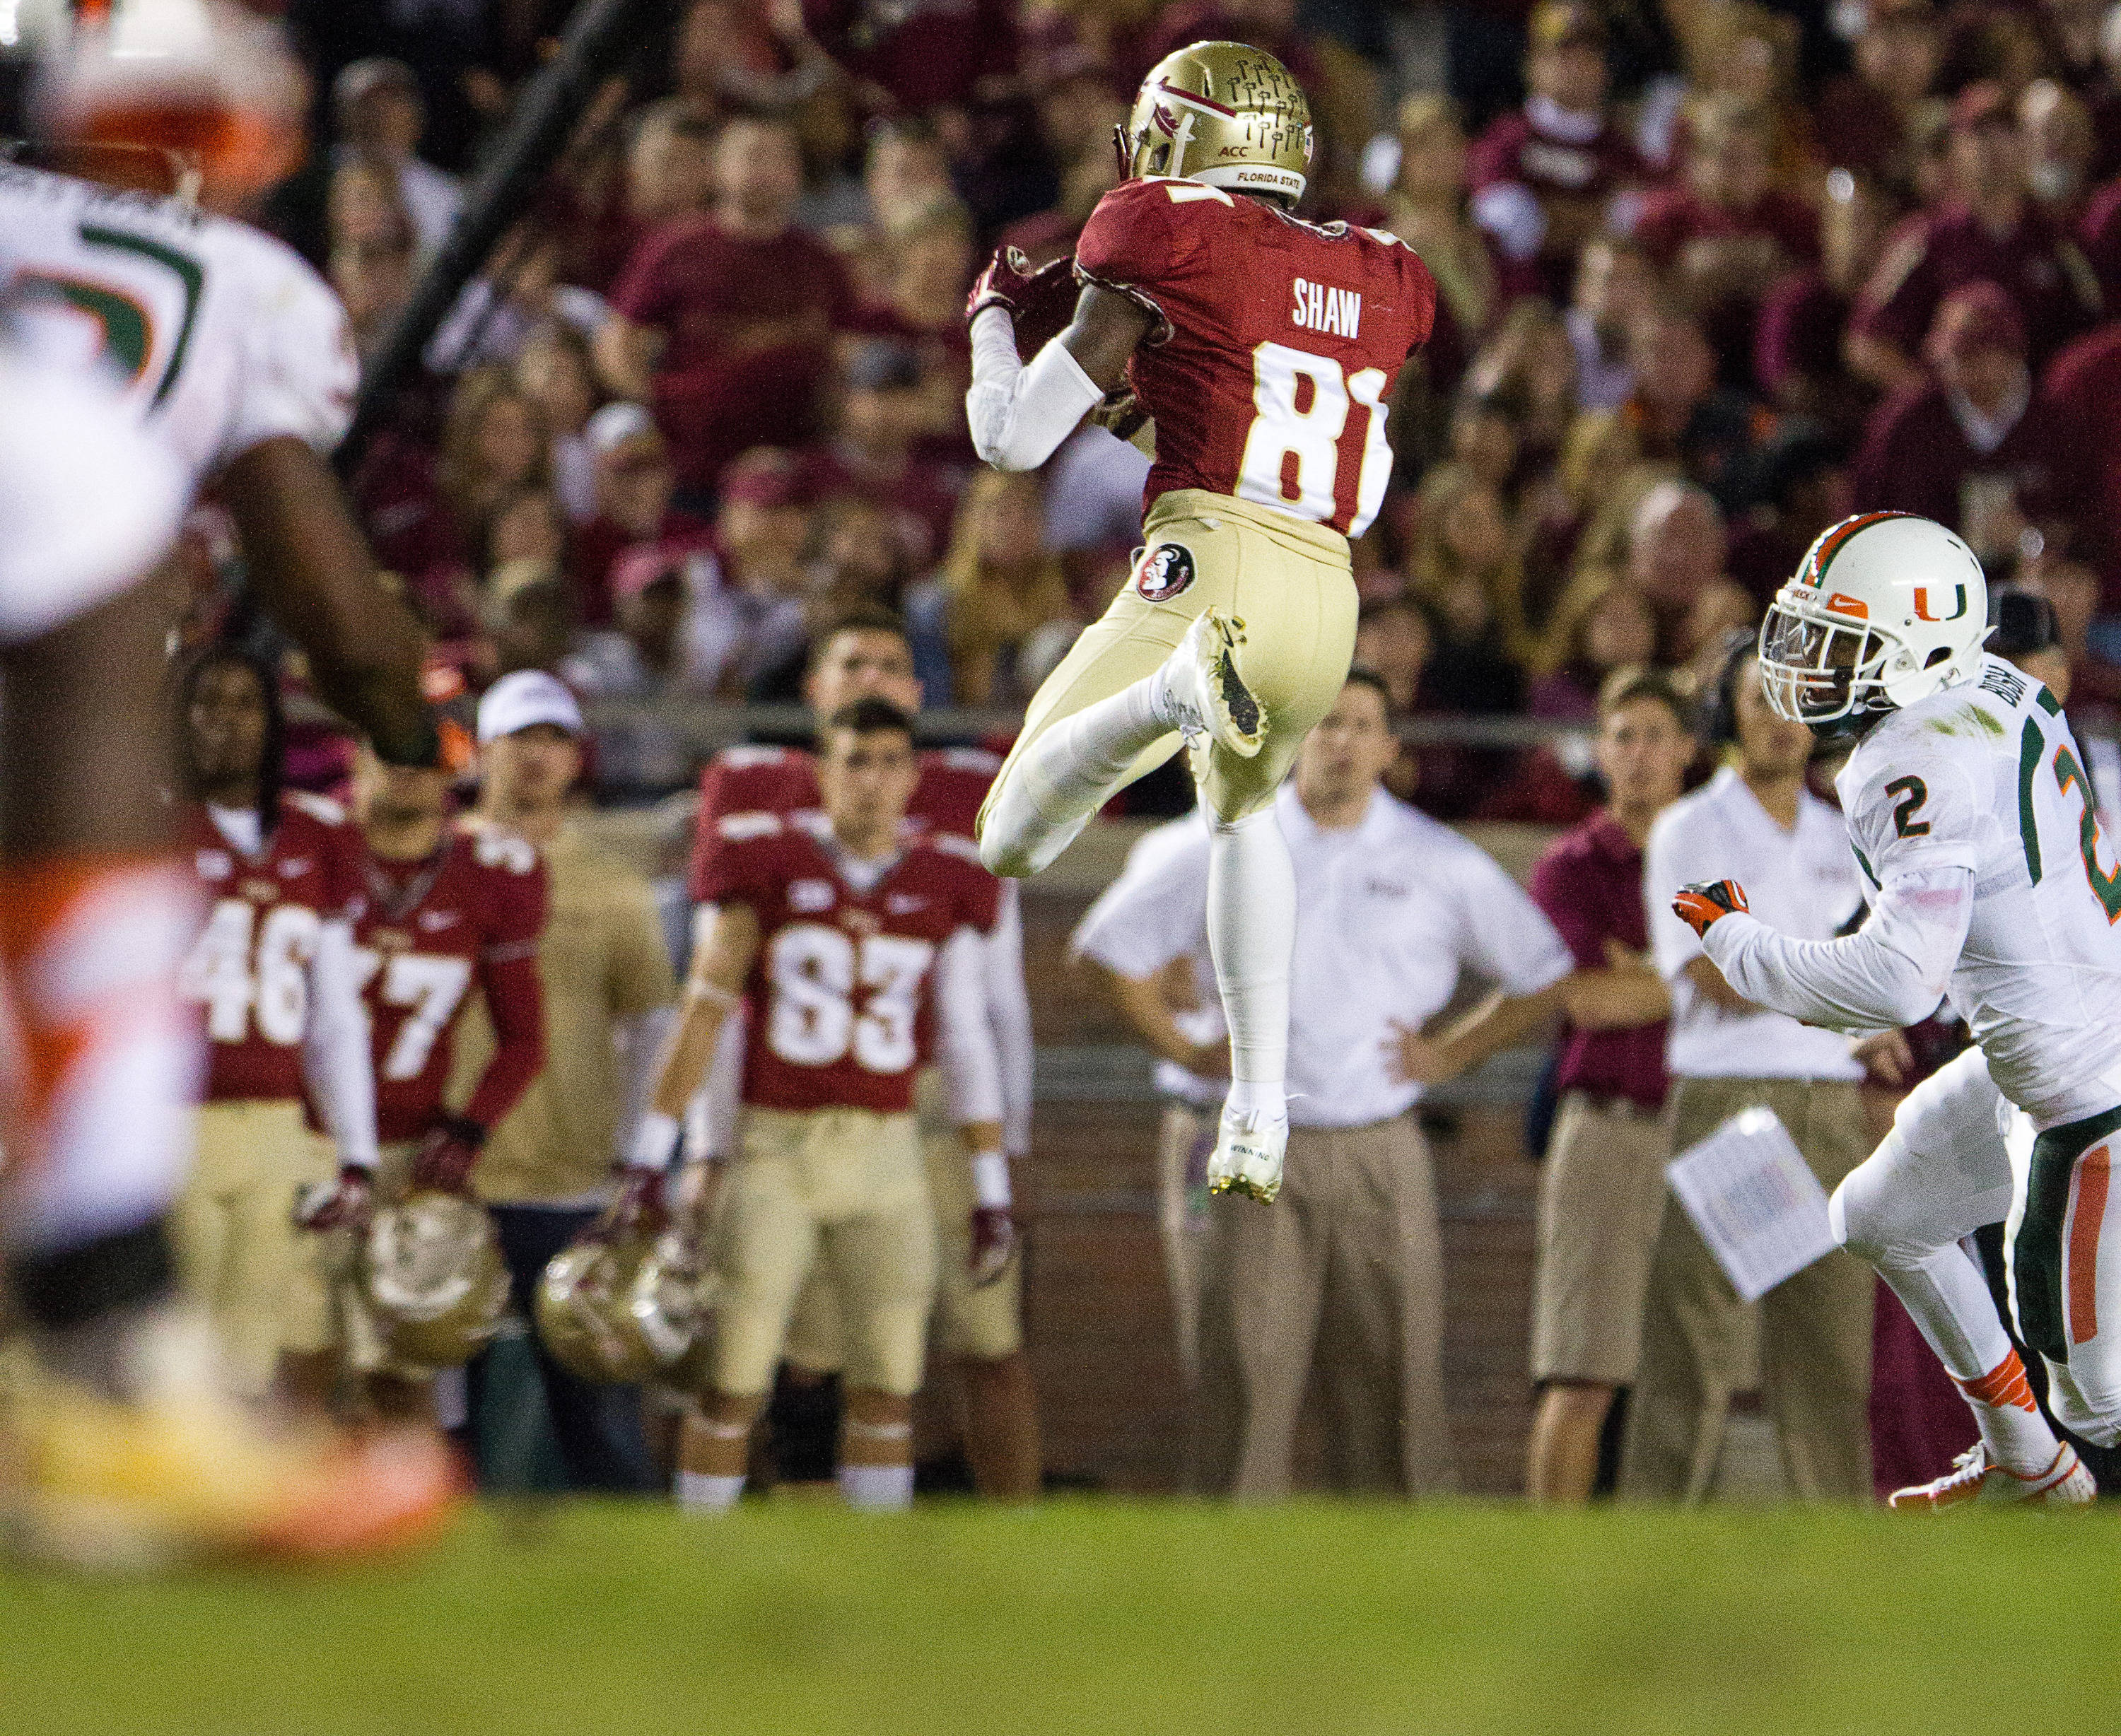 Kenny Shaw (81) makes a reception during FSU football's 41-14 win over Miami on Saturday, November 2, 2013 in Tallahassee, Fla. Photo by Michael Schwarz.